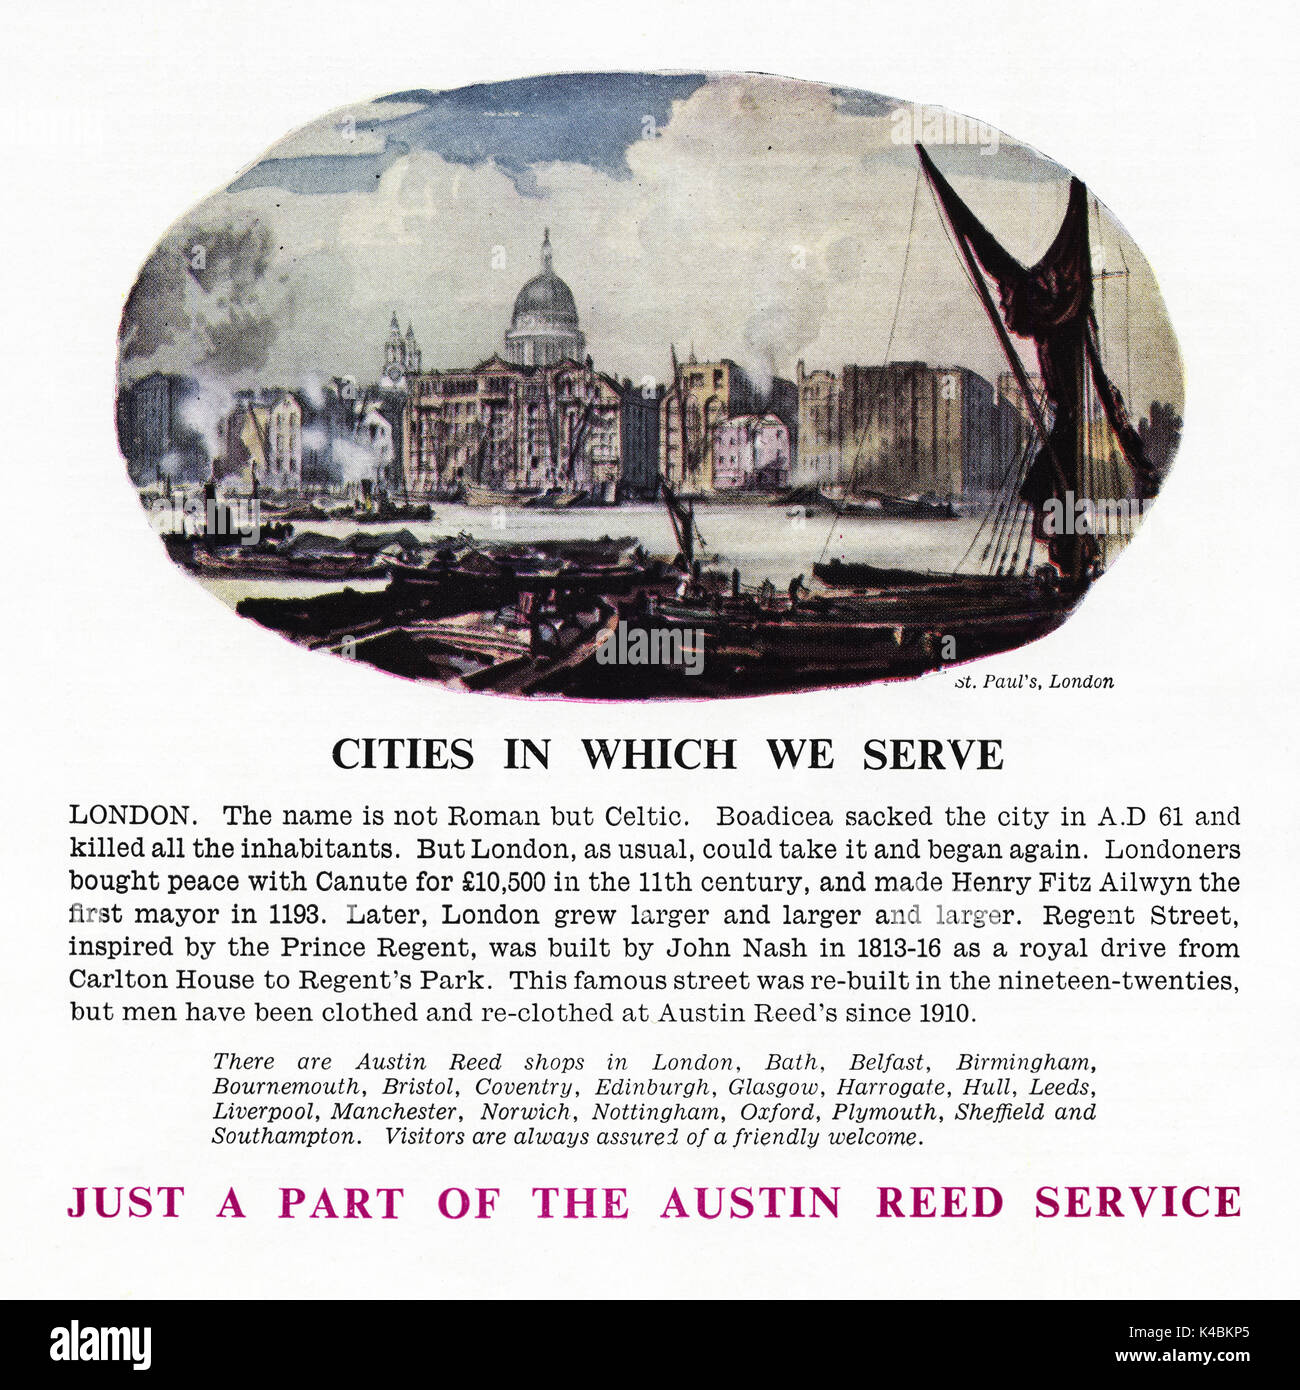 1940s Old Vintage Original Advert Advertising Austin Reed Men S Stock Photo Alamy